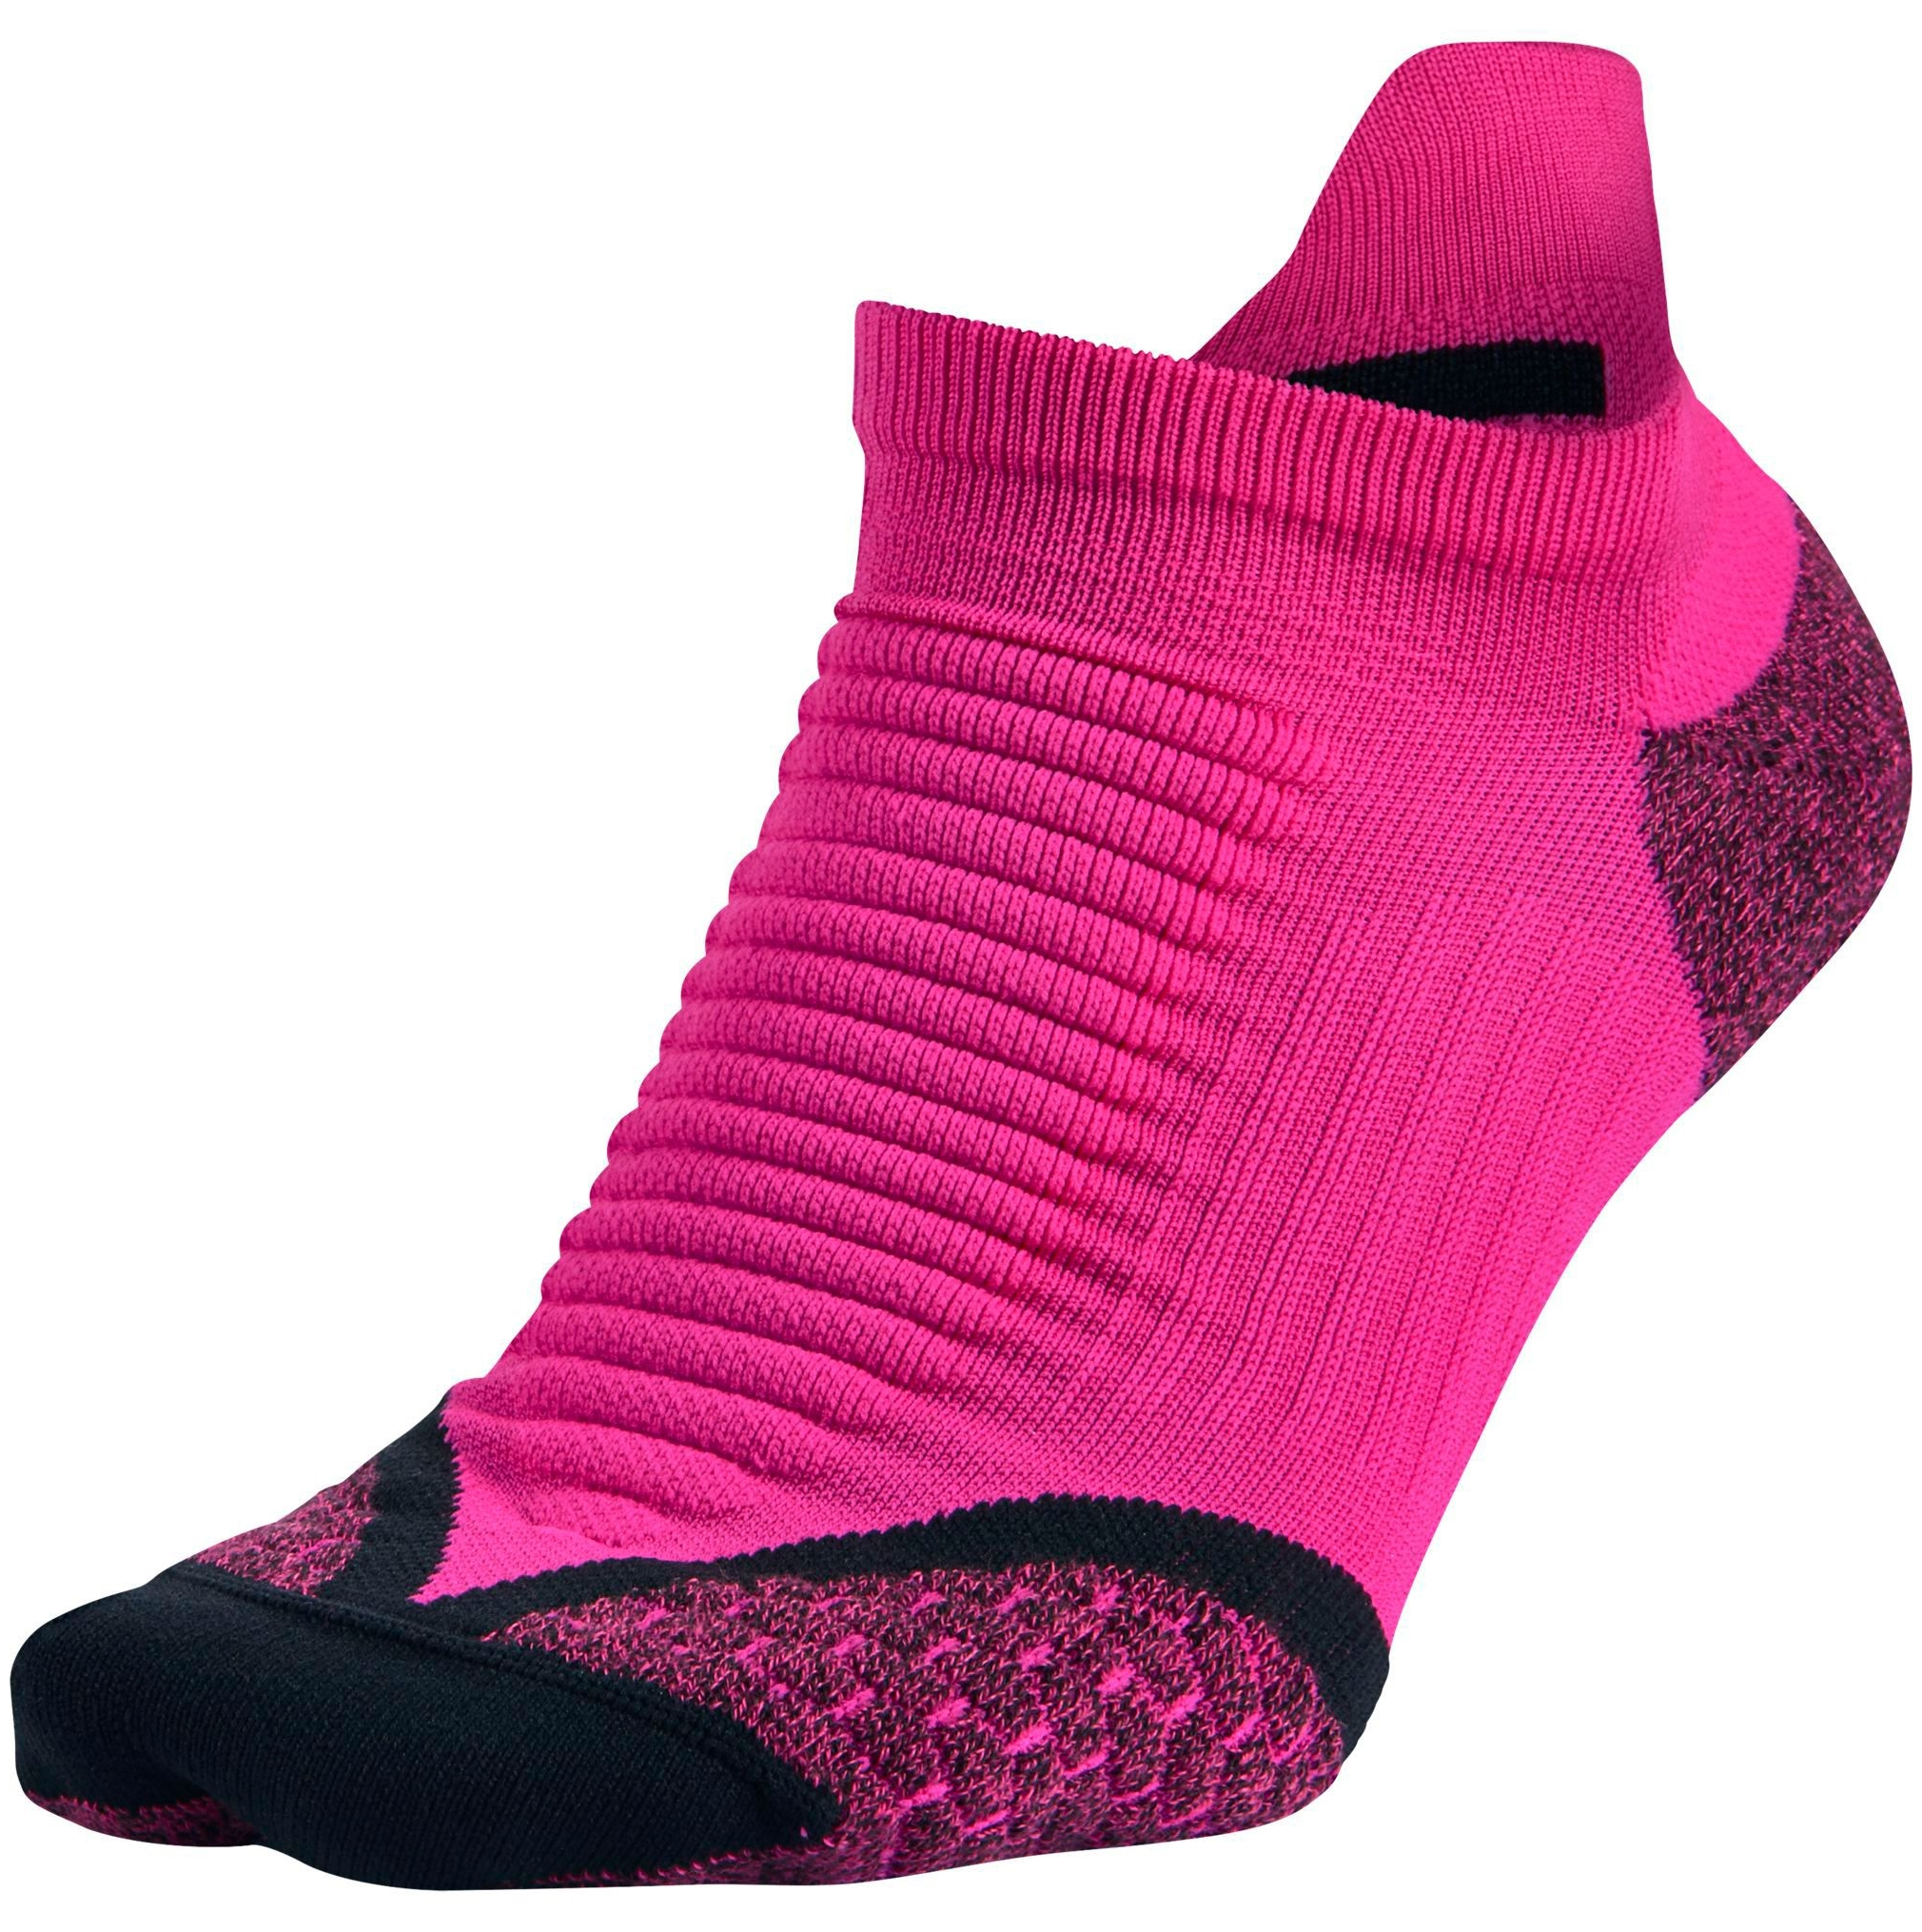 Nike Elite Running Cushion No-Show Tab Socks - Pink Foil/...